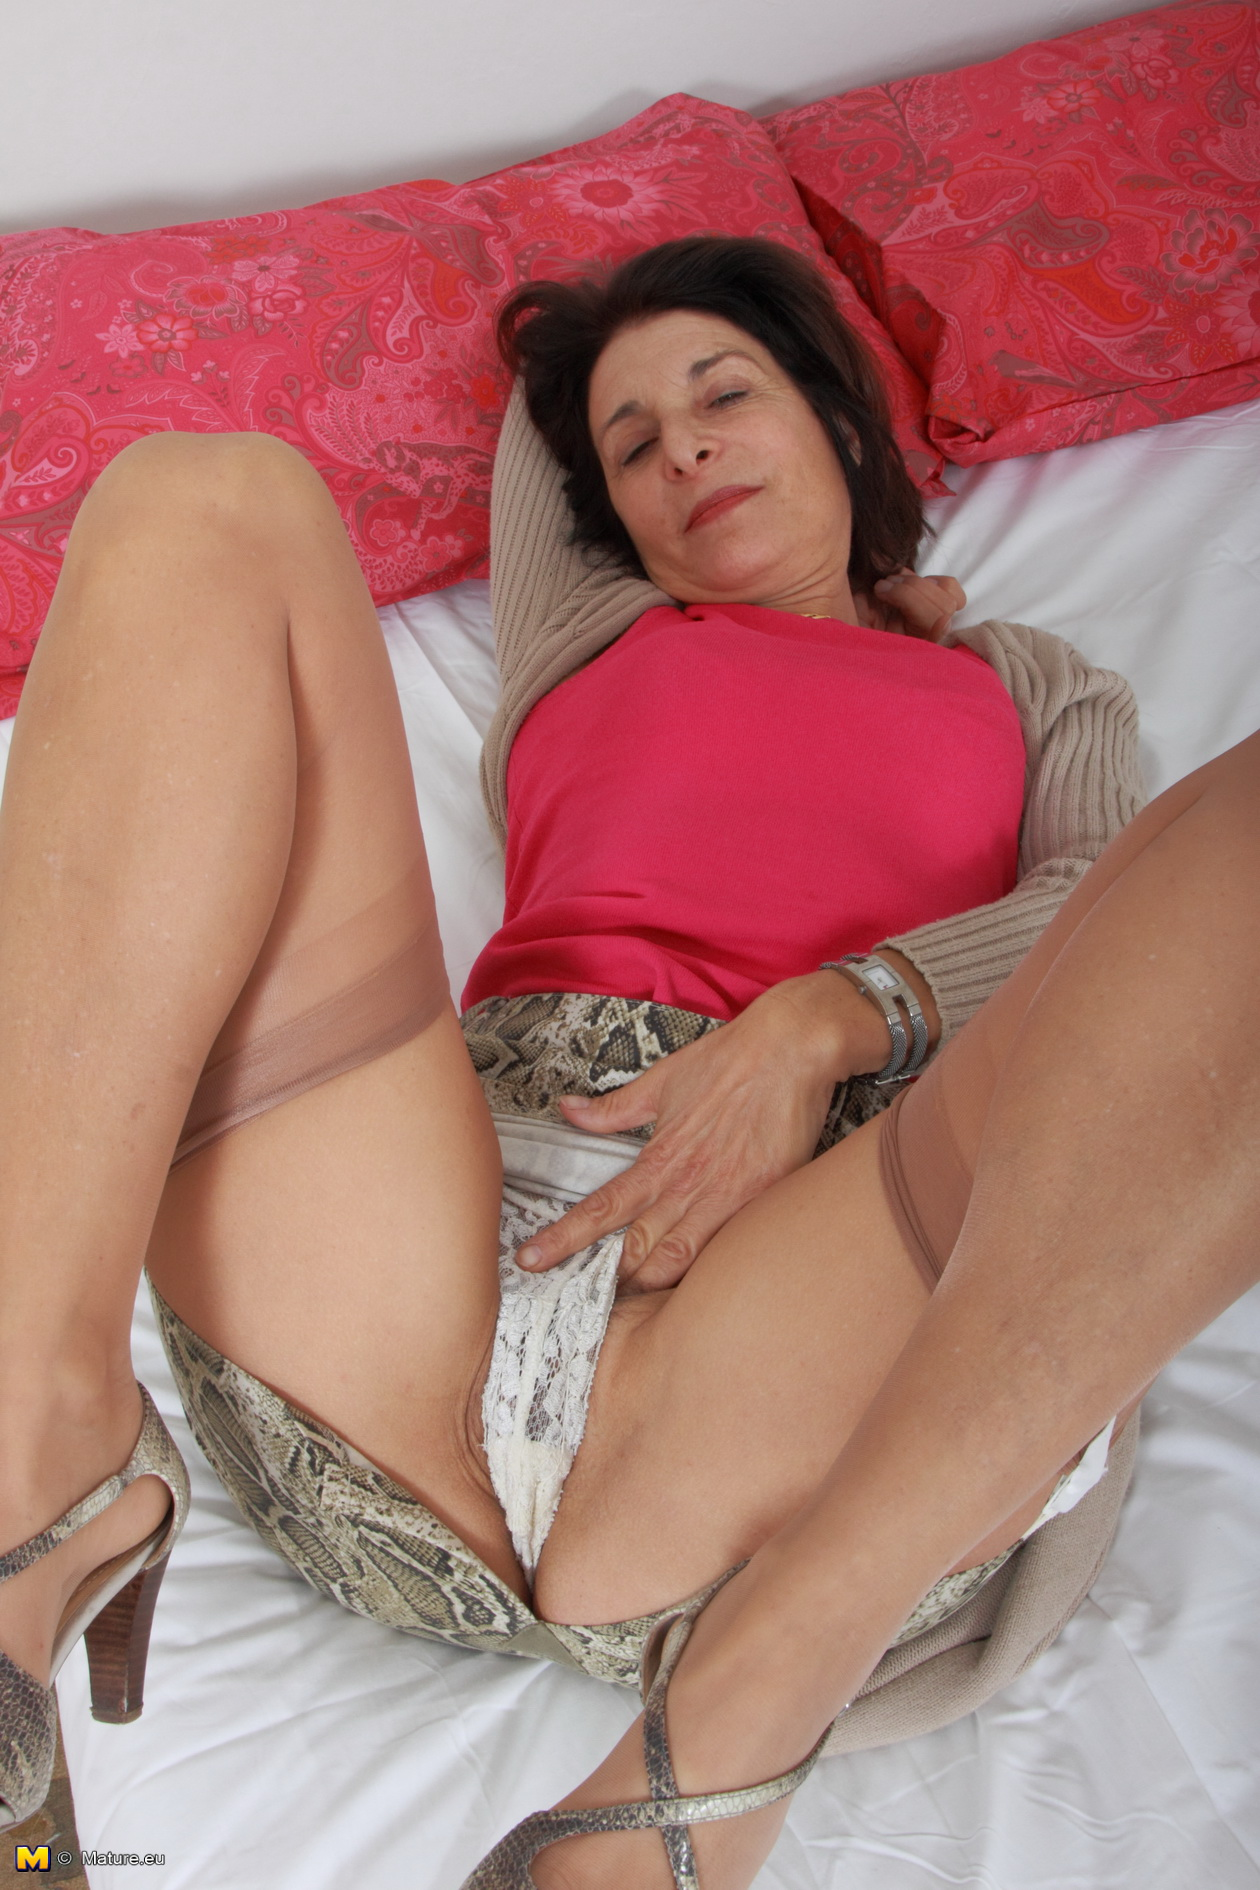 Oasis slut wife fucking